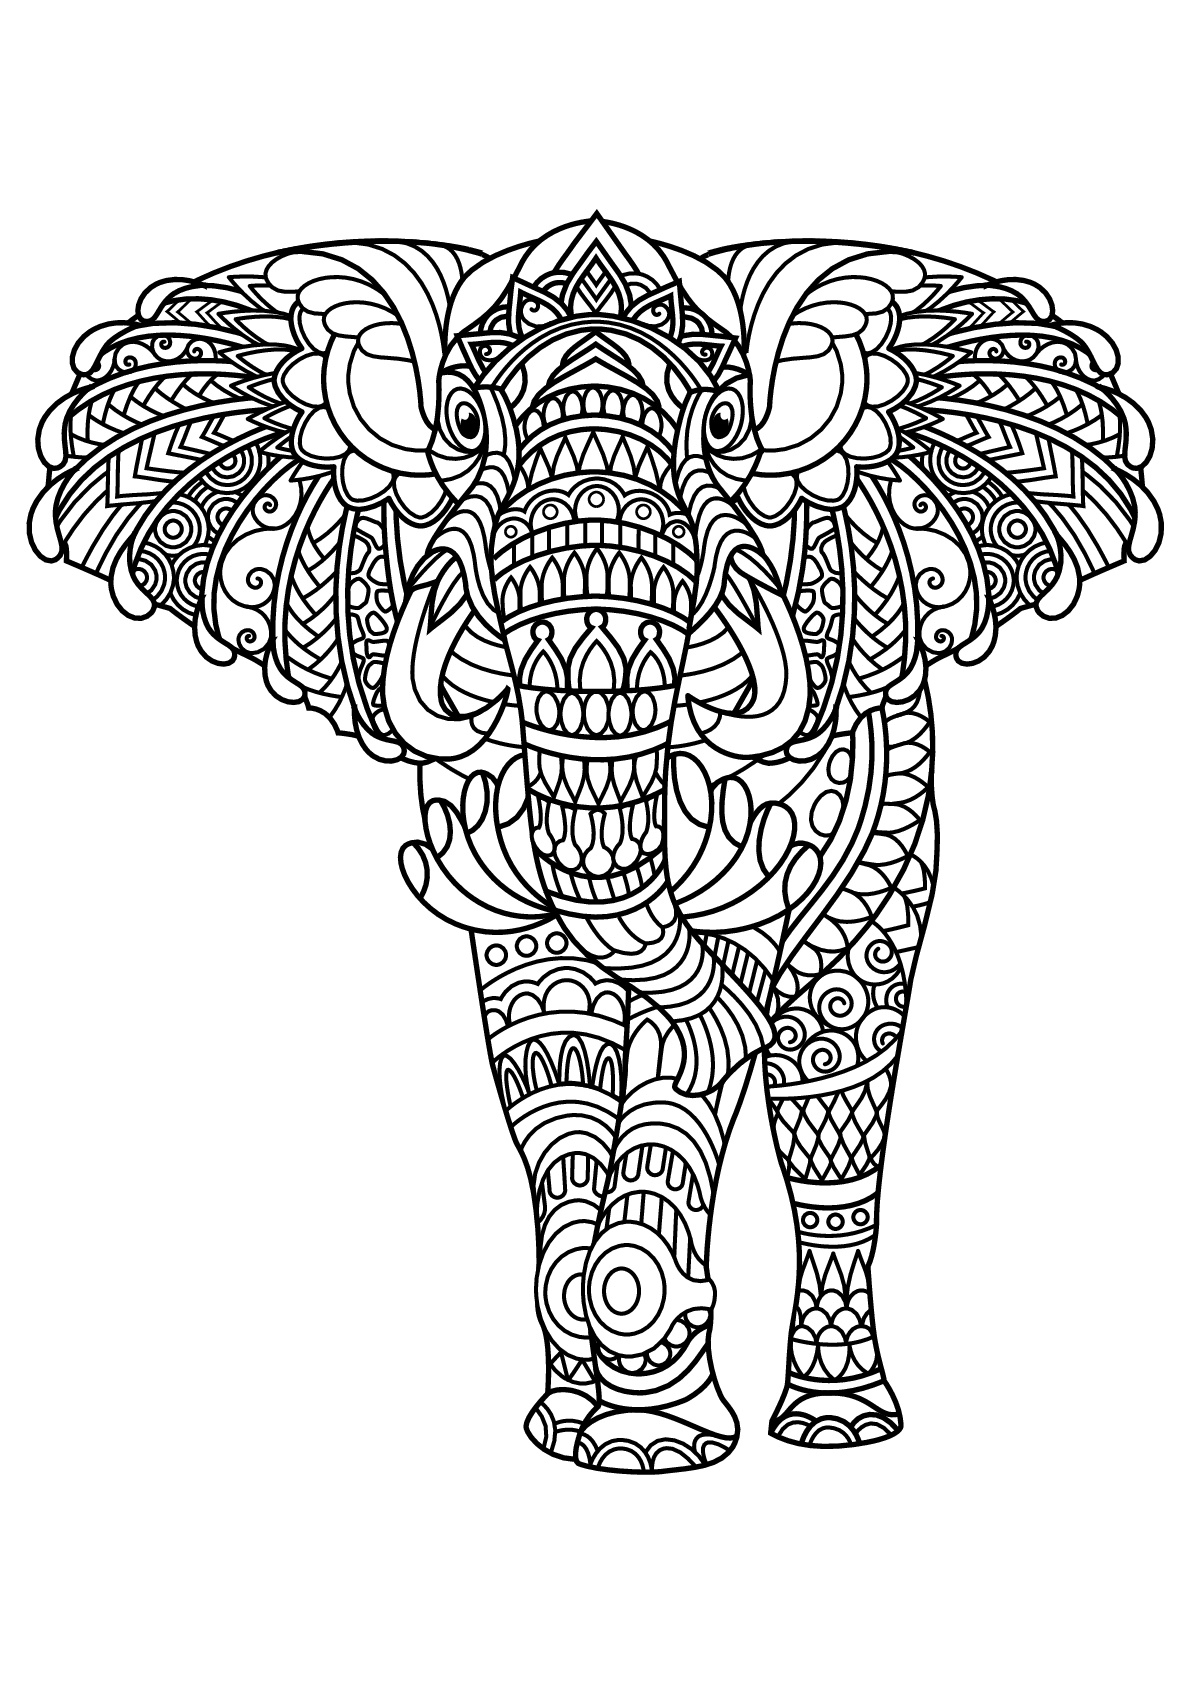 elephant for coloring elephants to color for children elephants kids coloring for elephant coloring